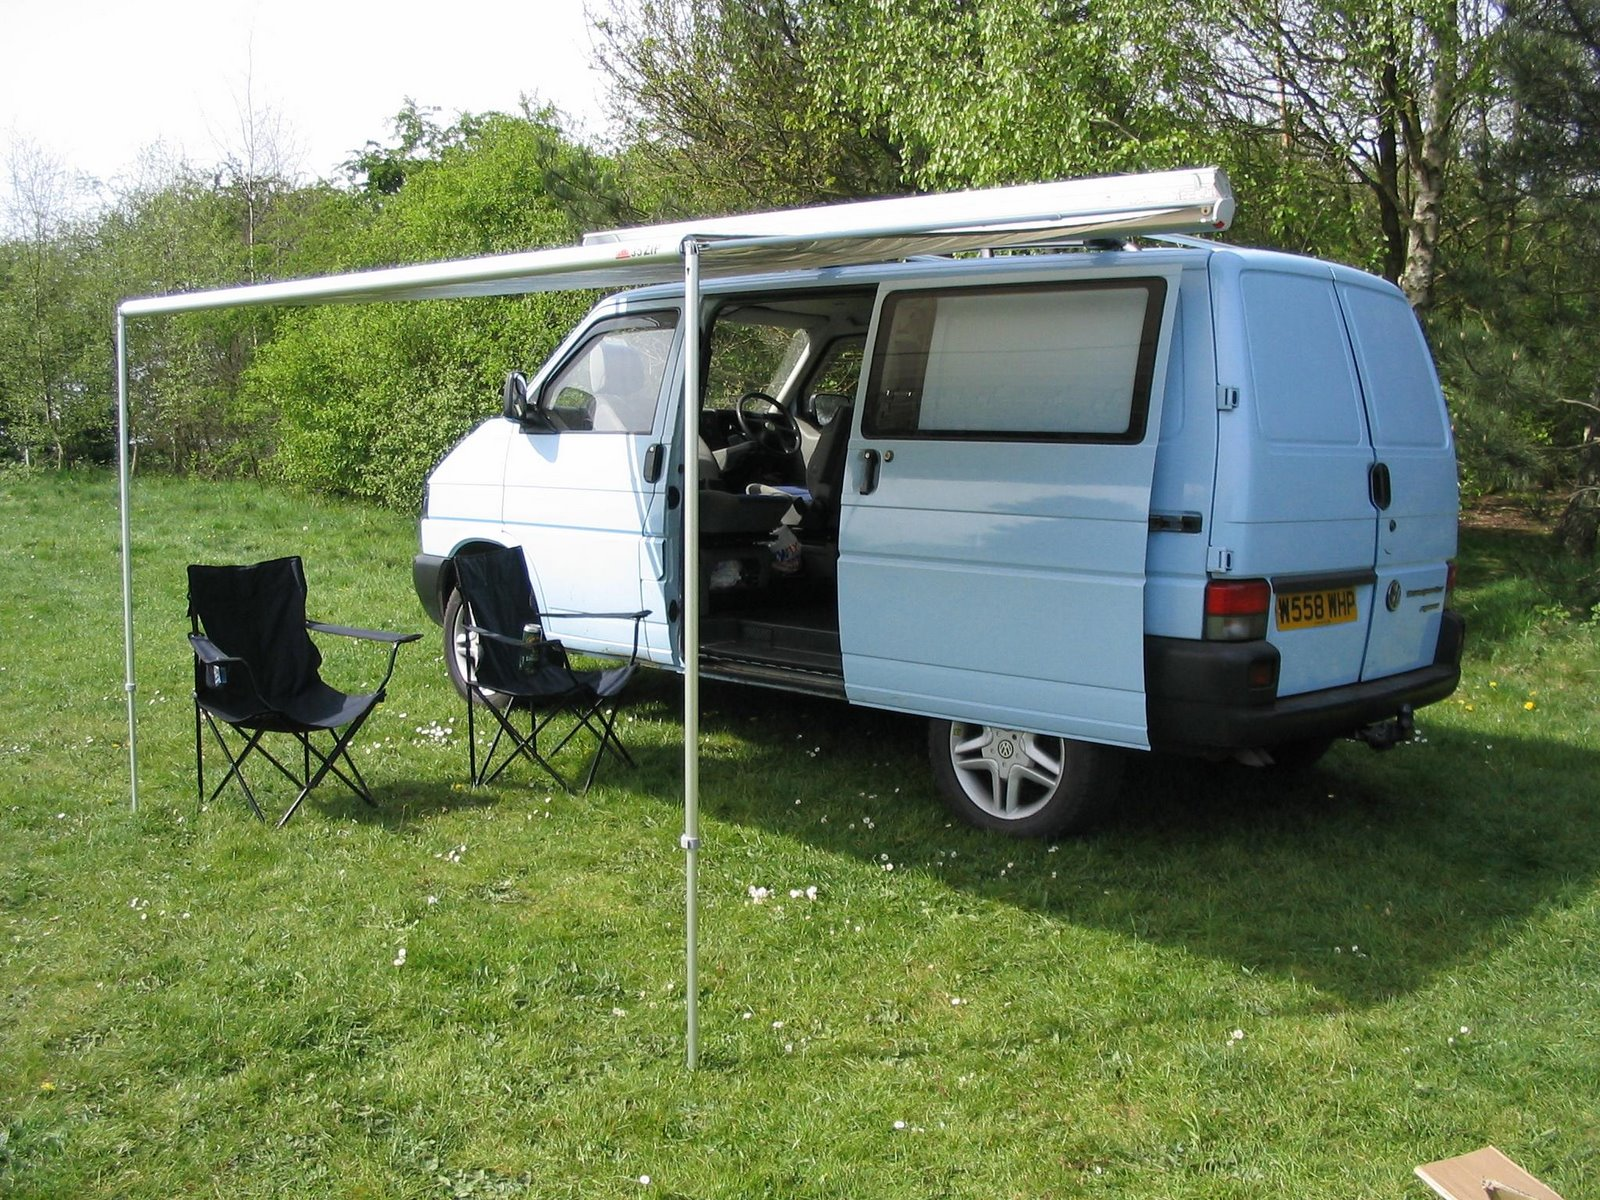 Vw Transporter T4 Syncro Camper Conversion  Fiamma Awning